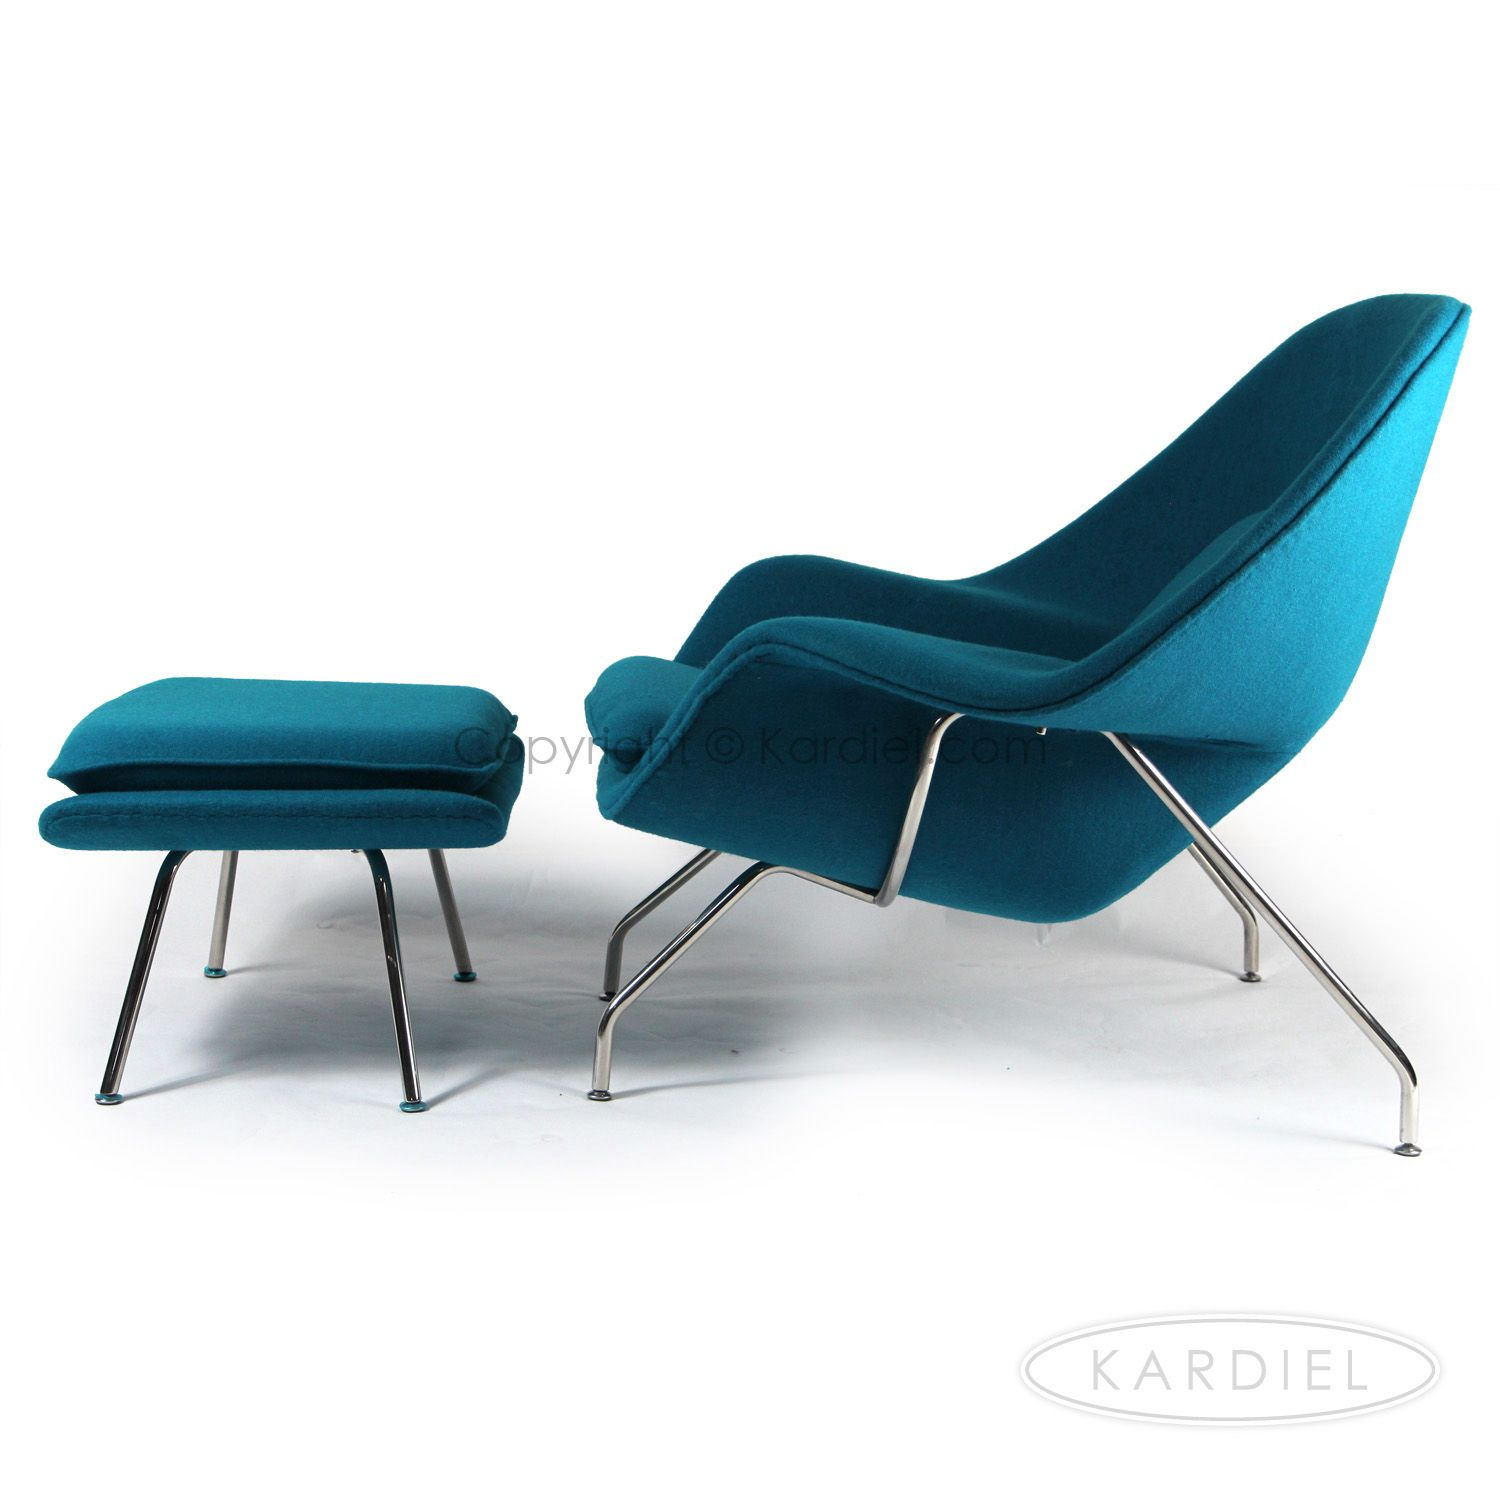 teal Womb chair by Kardiel